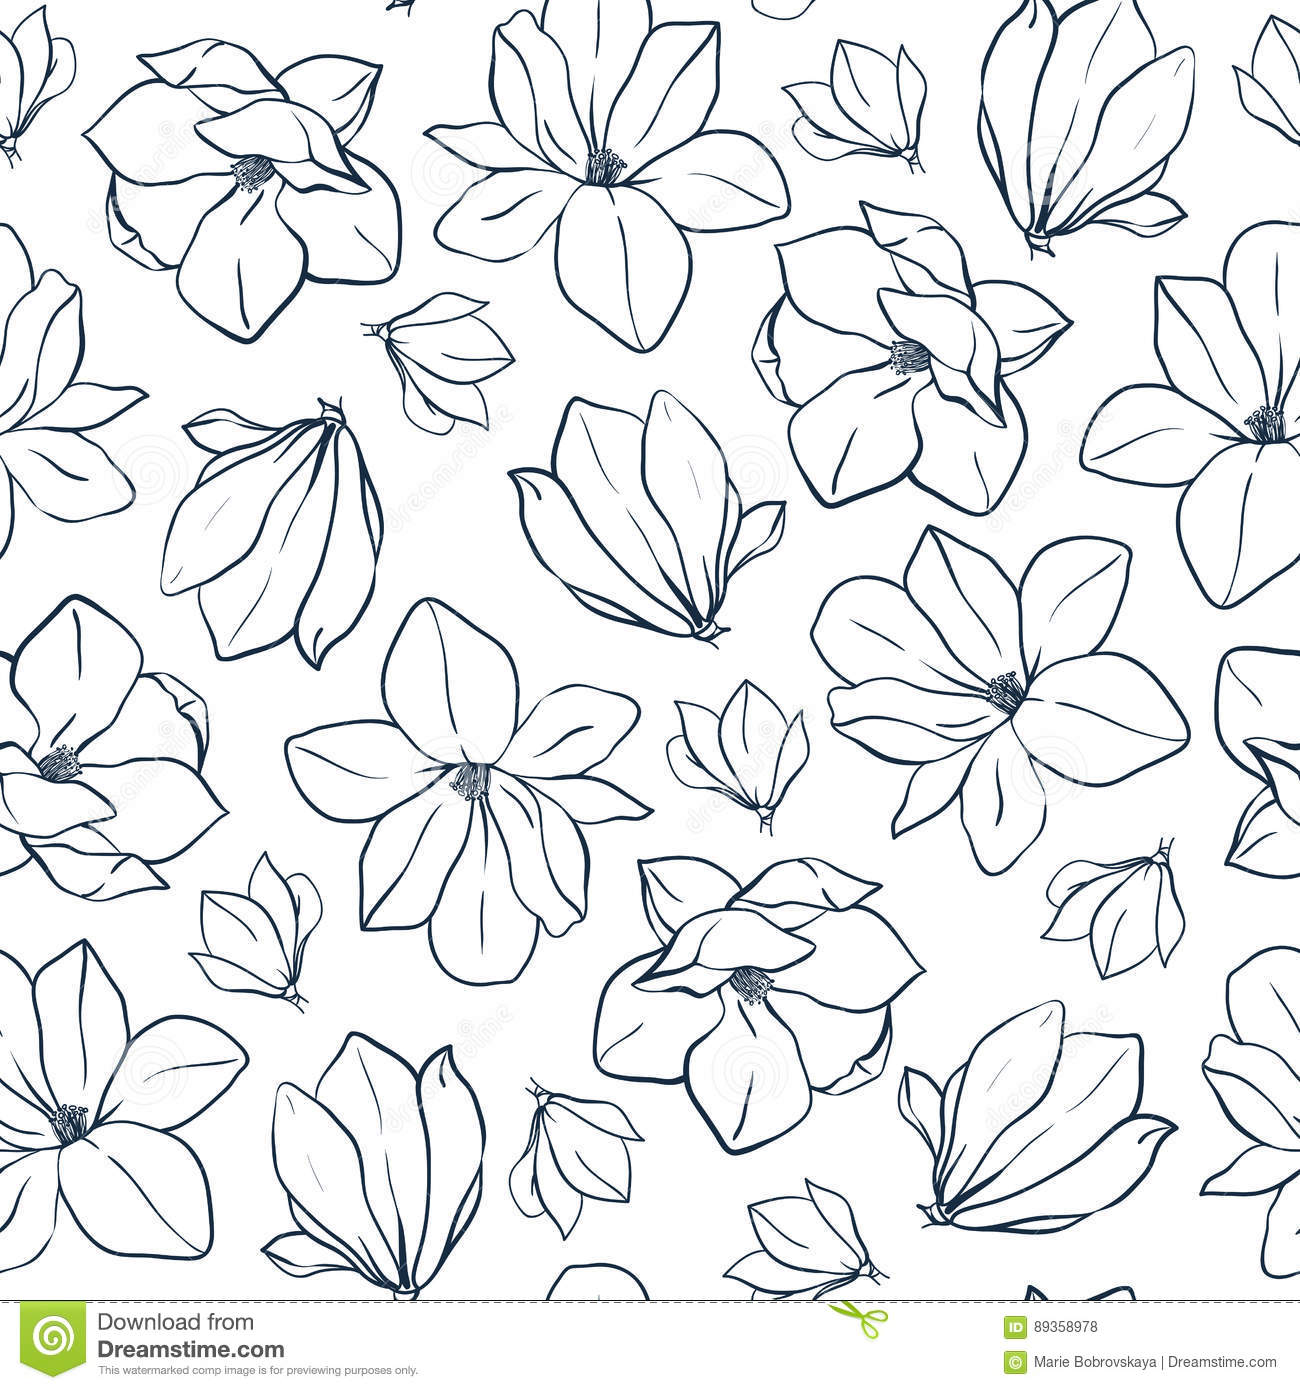 Coloring pages of flower buds - Graphic Magnolia Flowers And Buds Vector Spring Seamless Pattern Coloring Book Page Design For